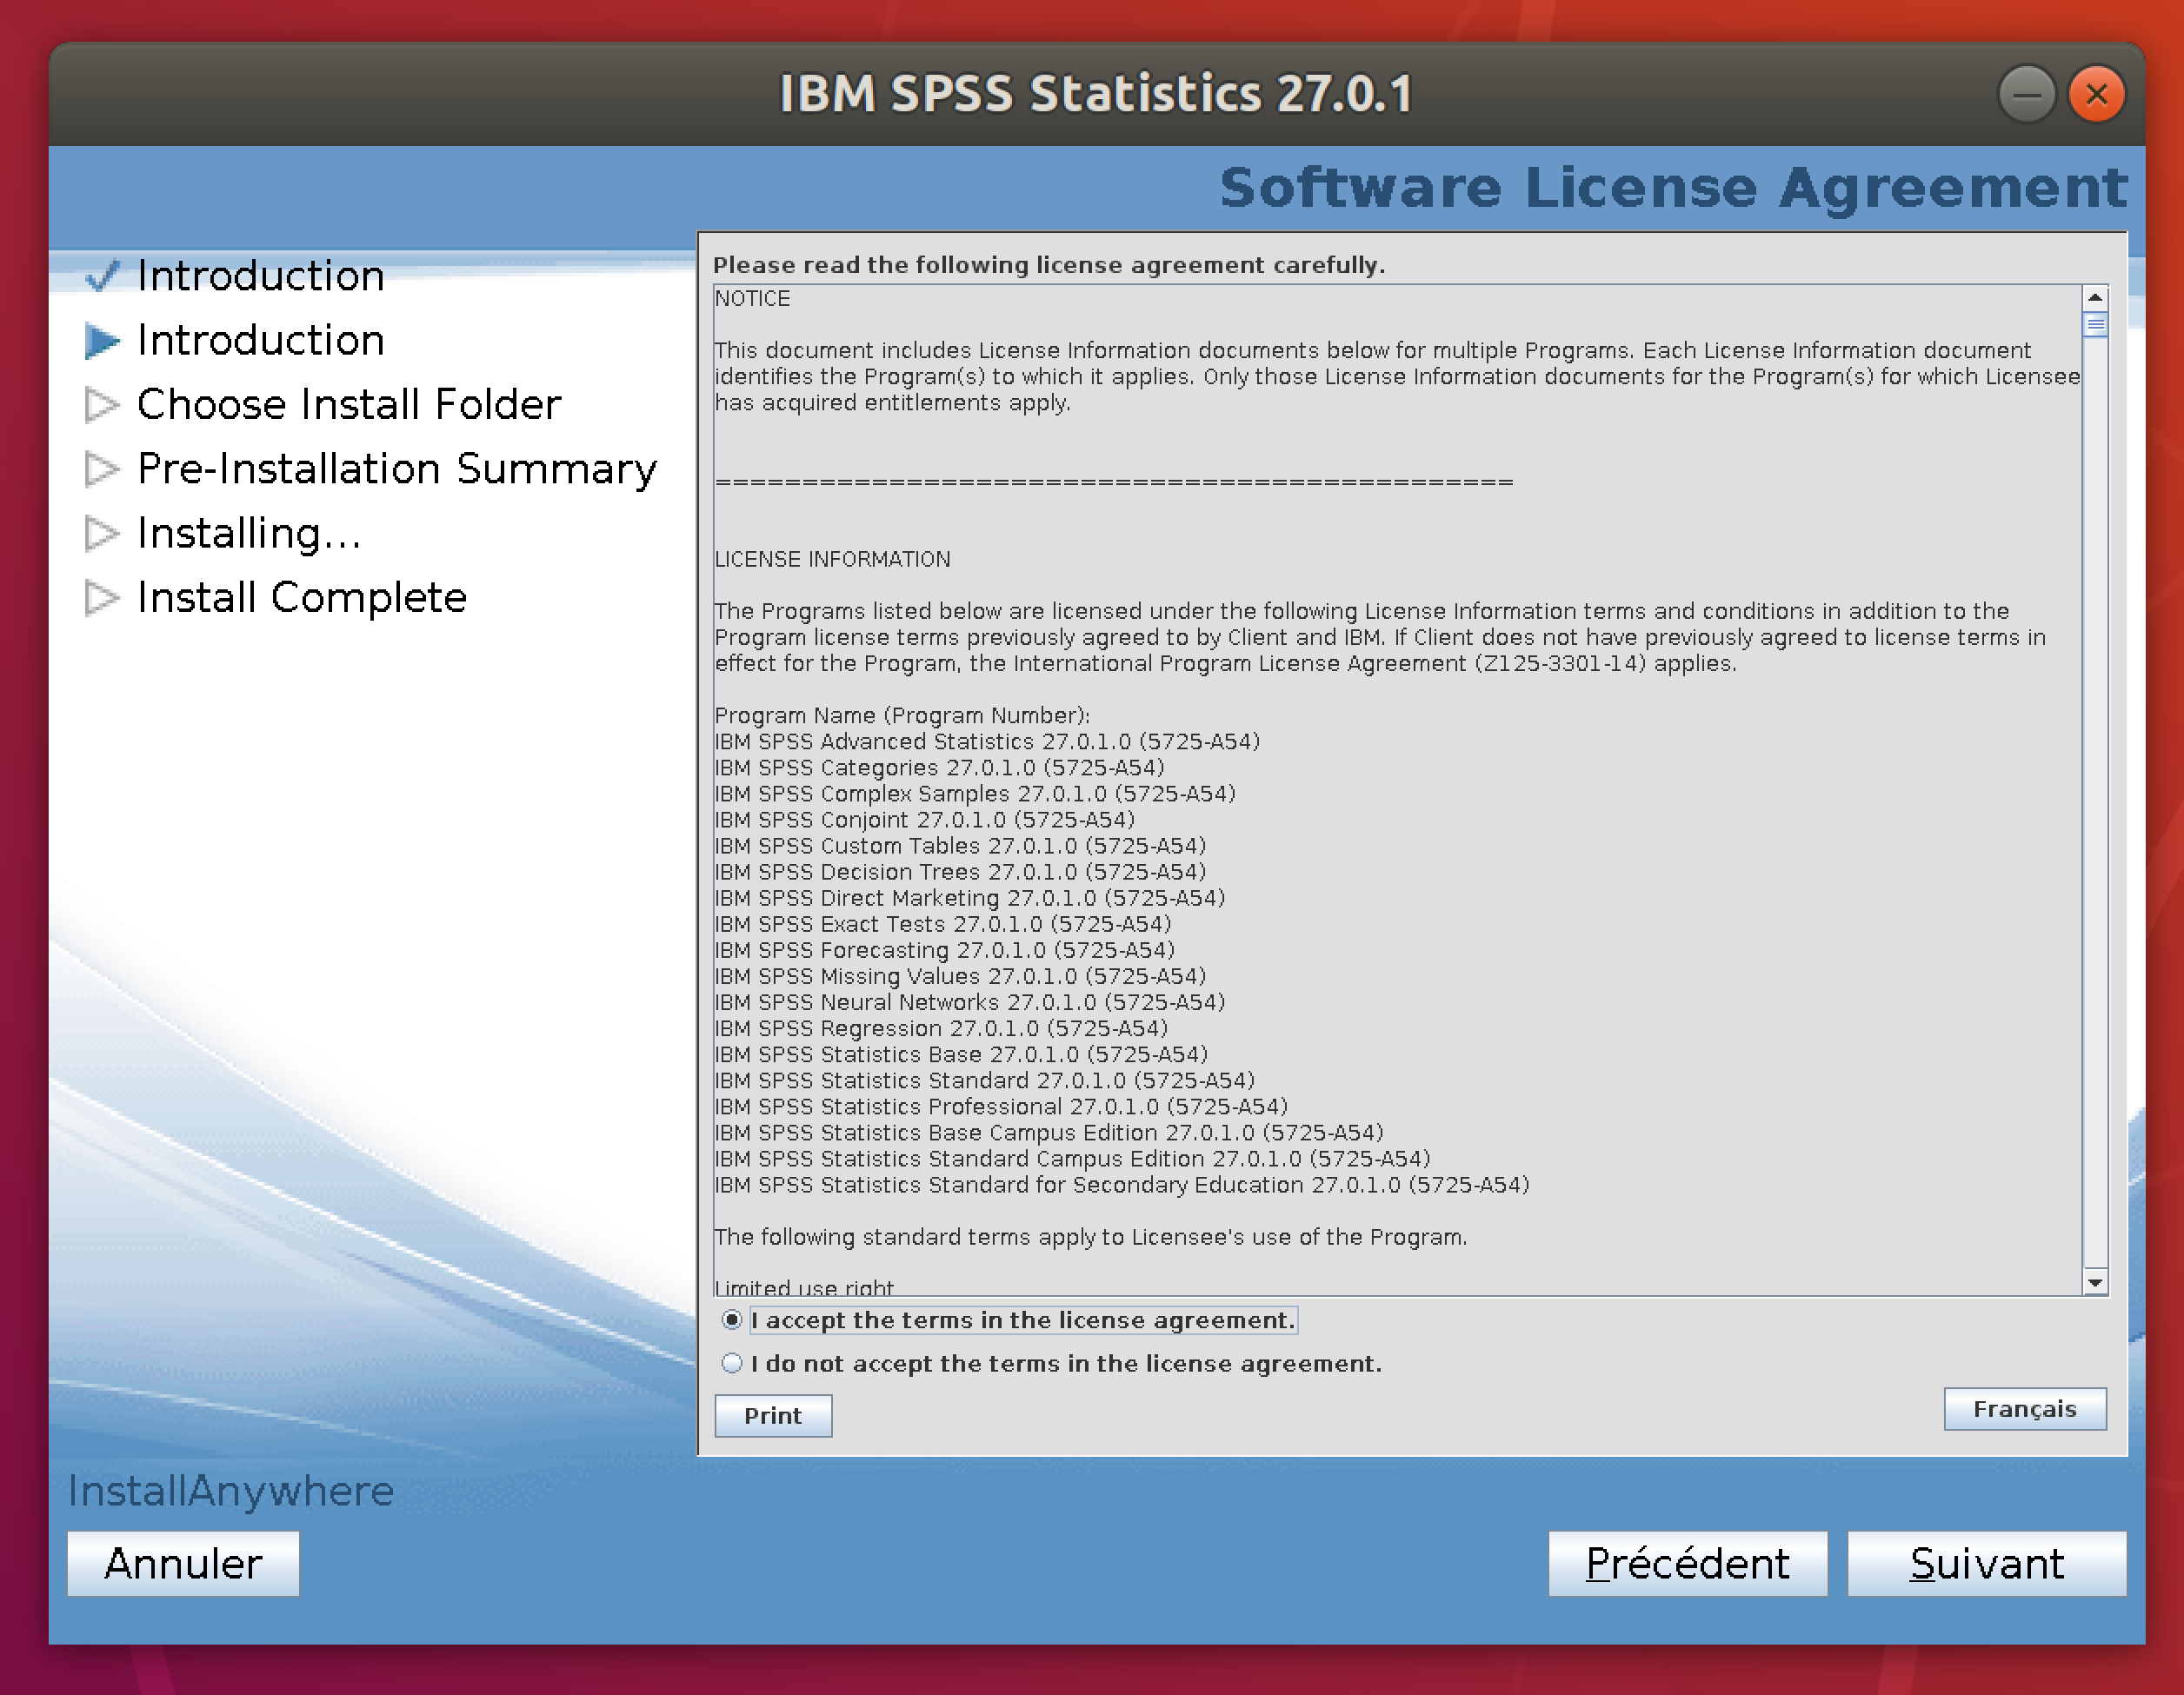 spss27_linux_00004.png